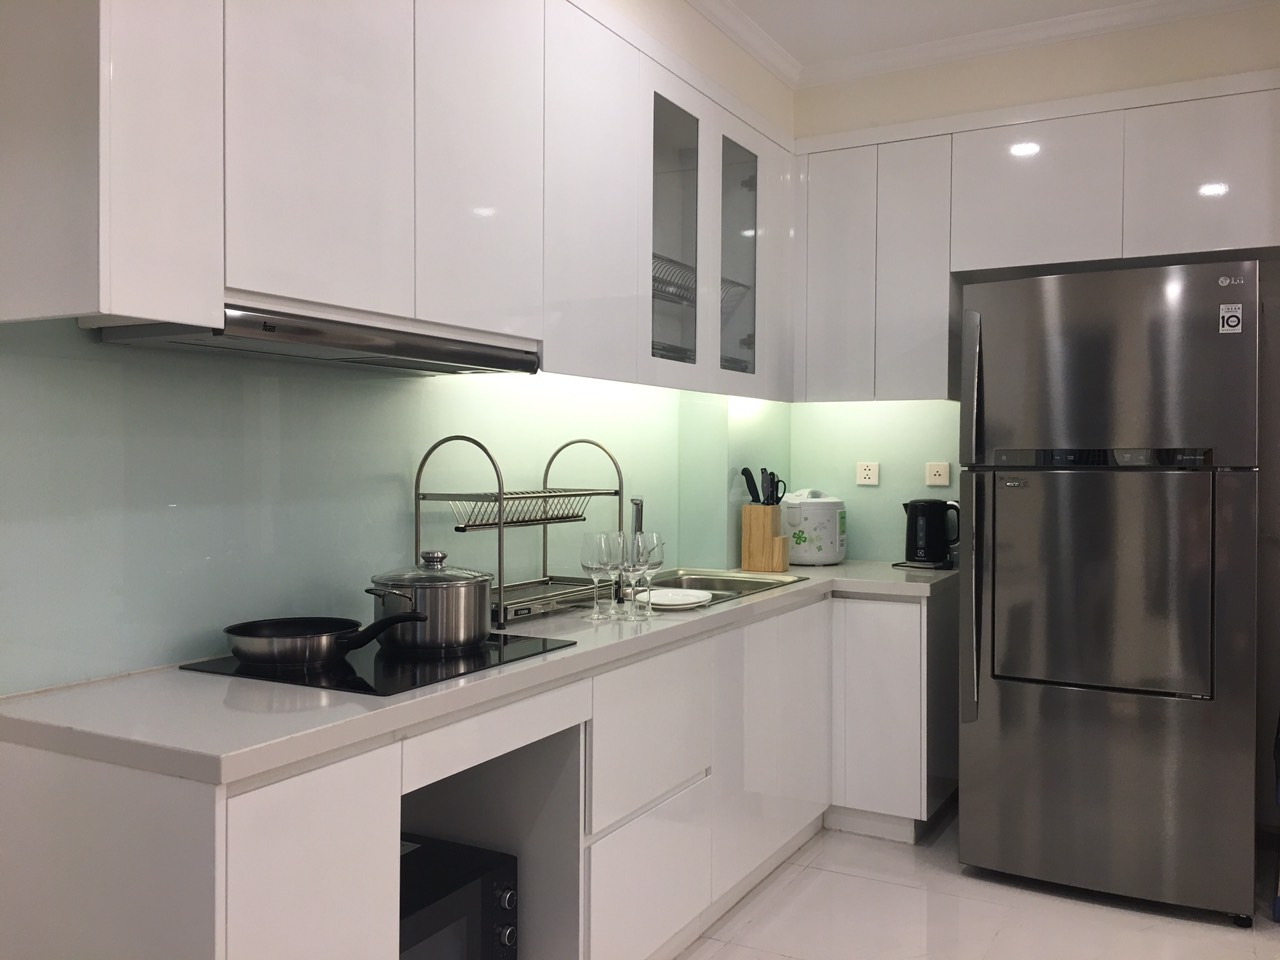 vinhomes central park apartment for rent in binh thanh district hcmc BT105L1497(4)